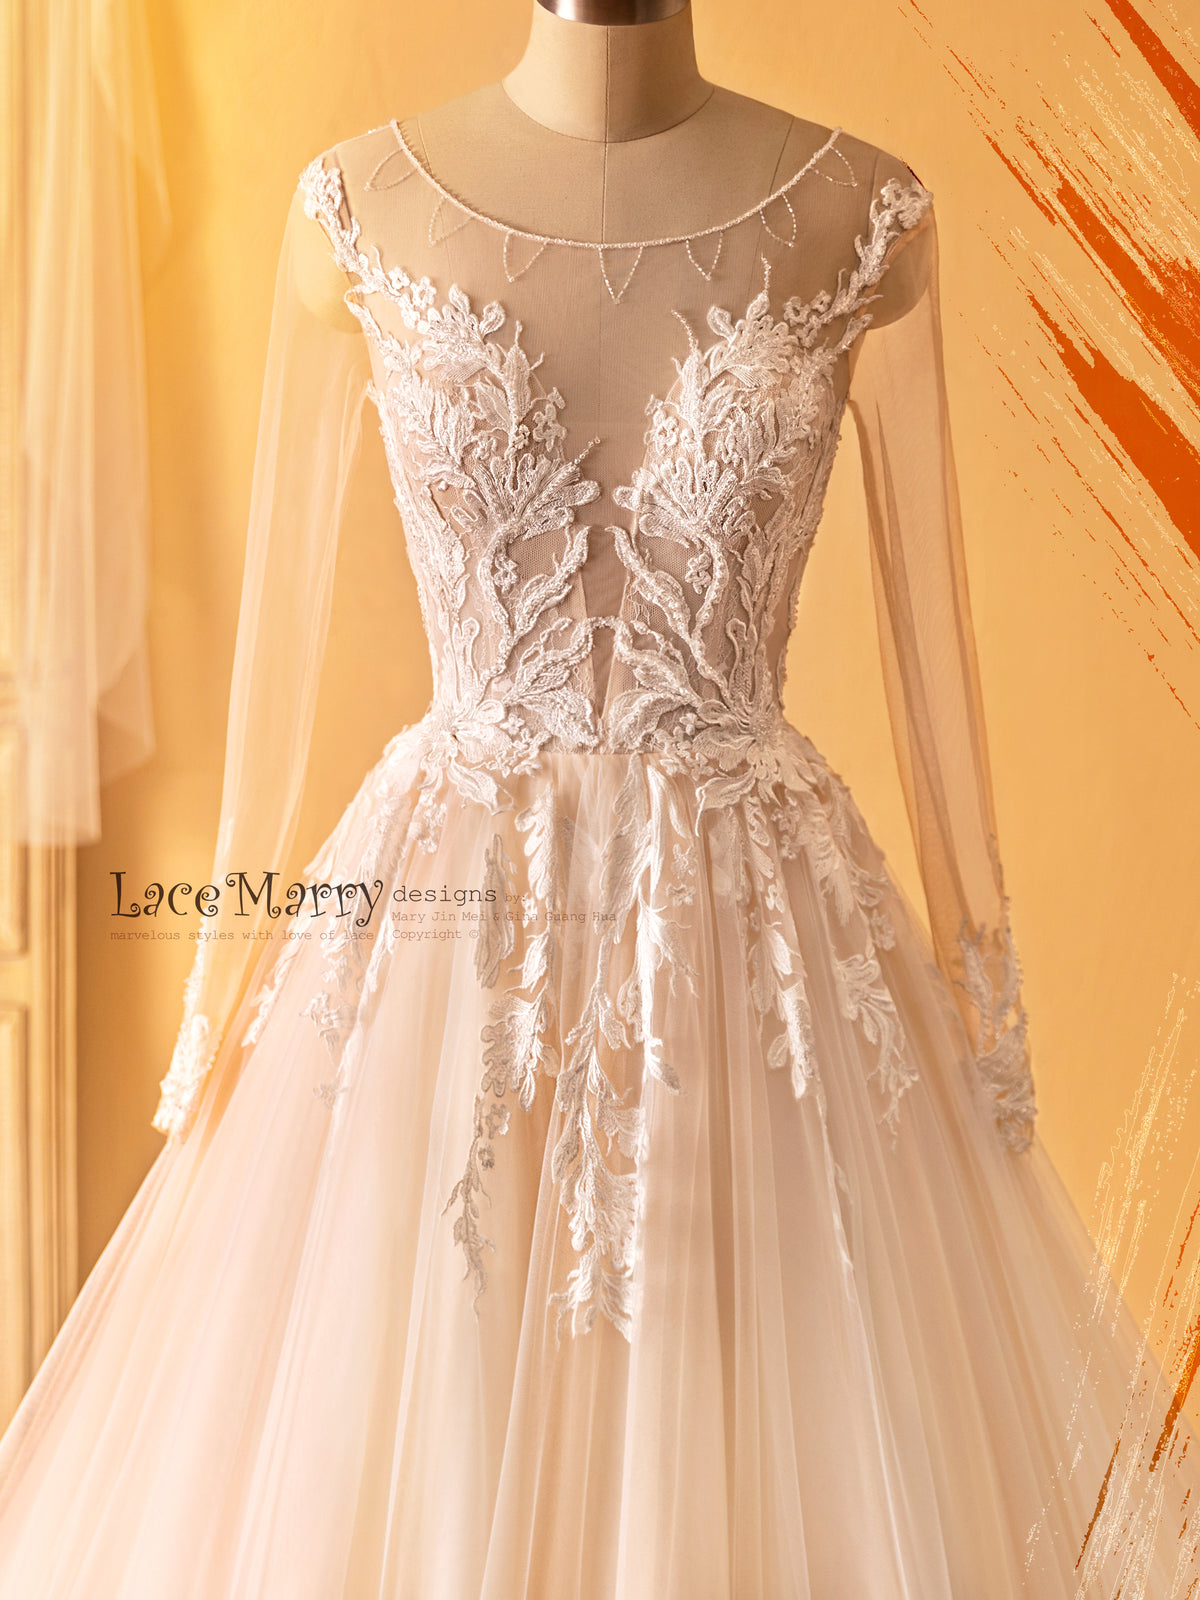 Long Sleeve Wedding Dress with Amazing Flower Appliques and Beading